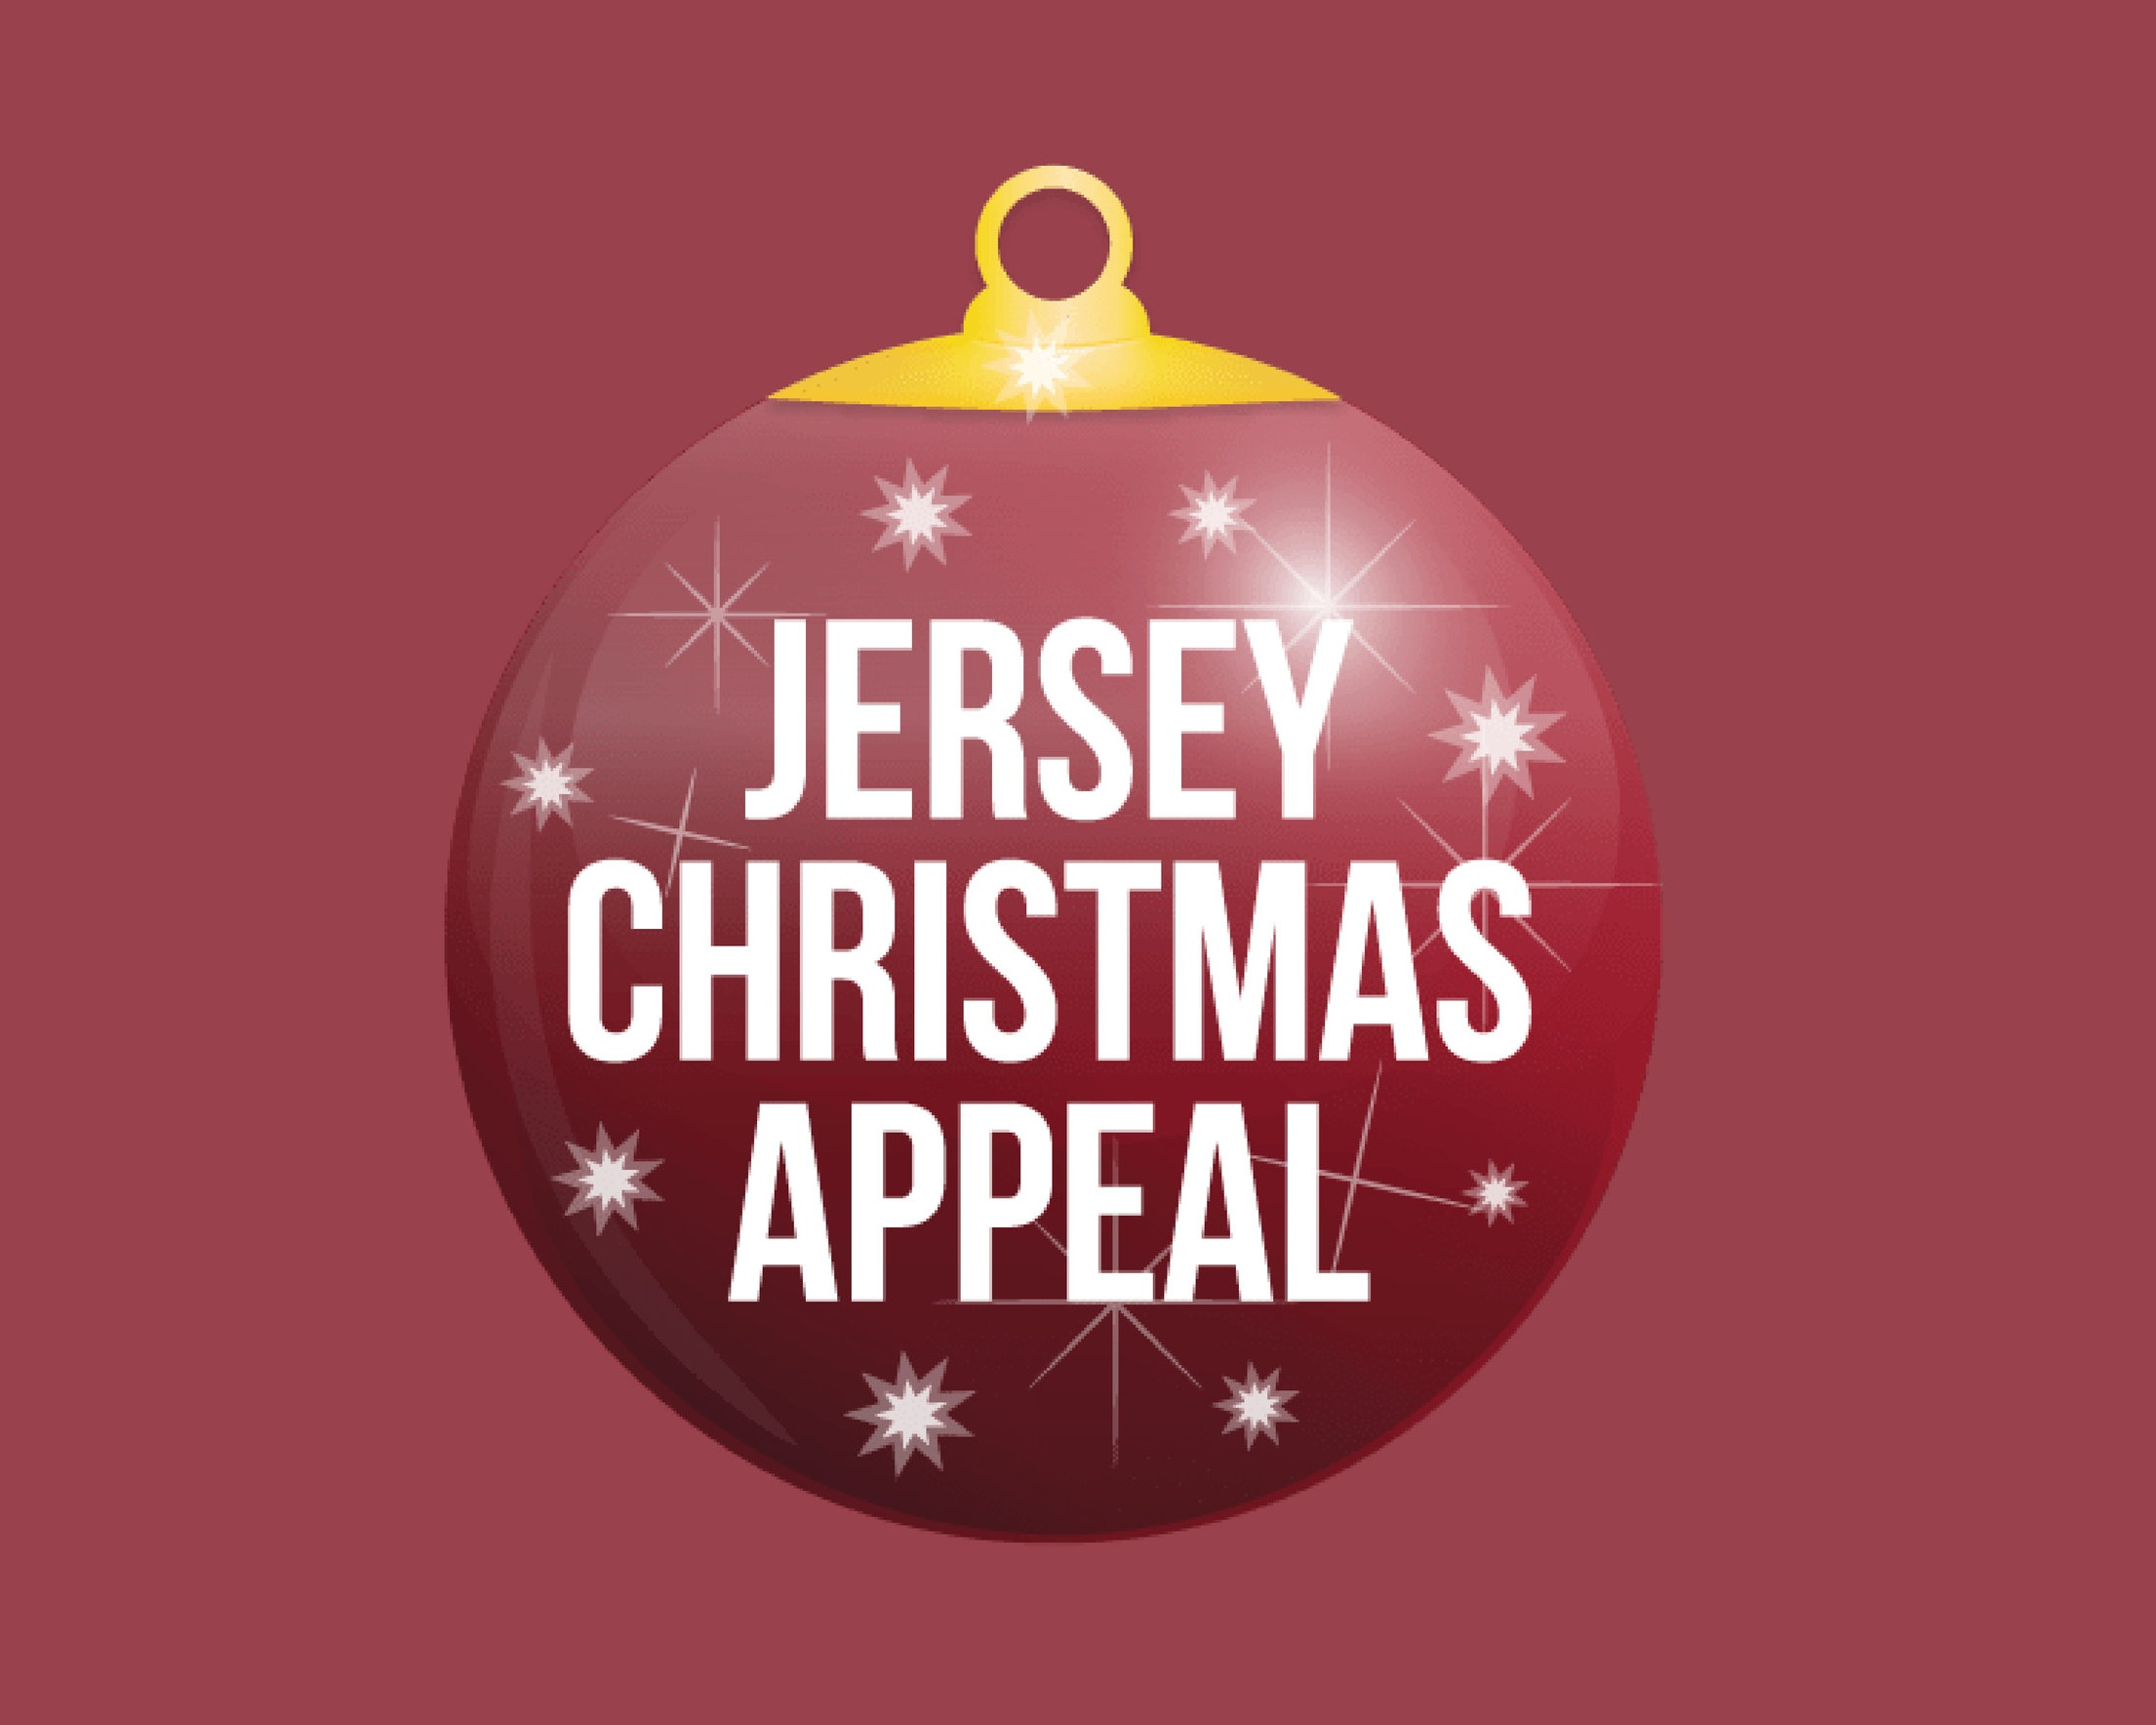 Large donations to the Jersey Christmas appeal -